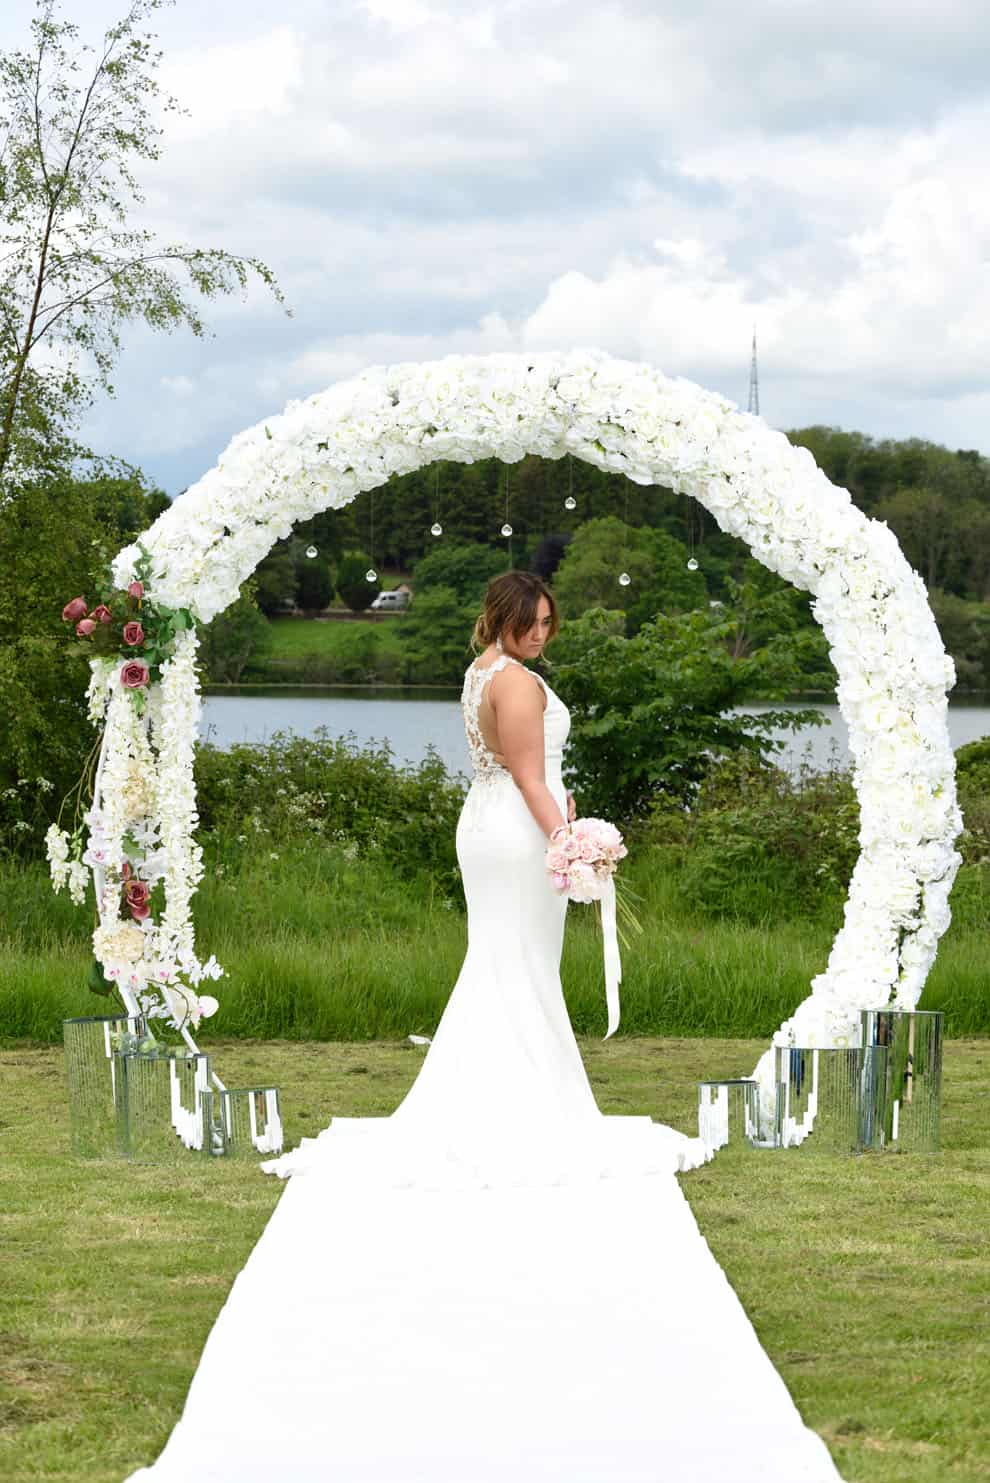 the-craigie-hotel-scottish-fife-wedding-venue-lochside